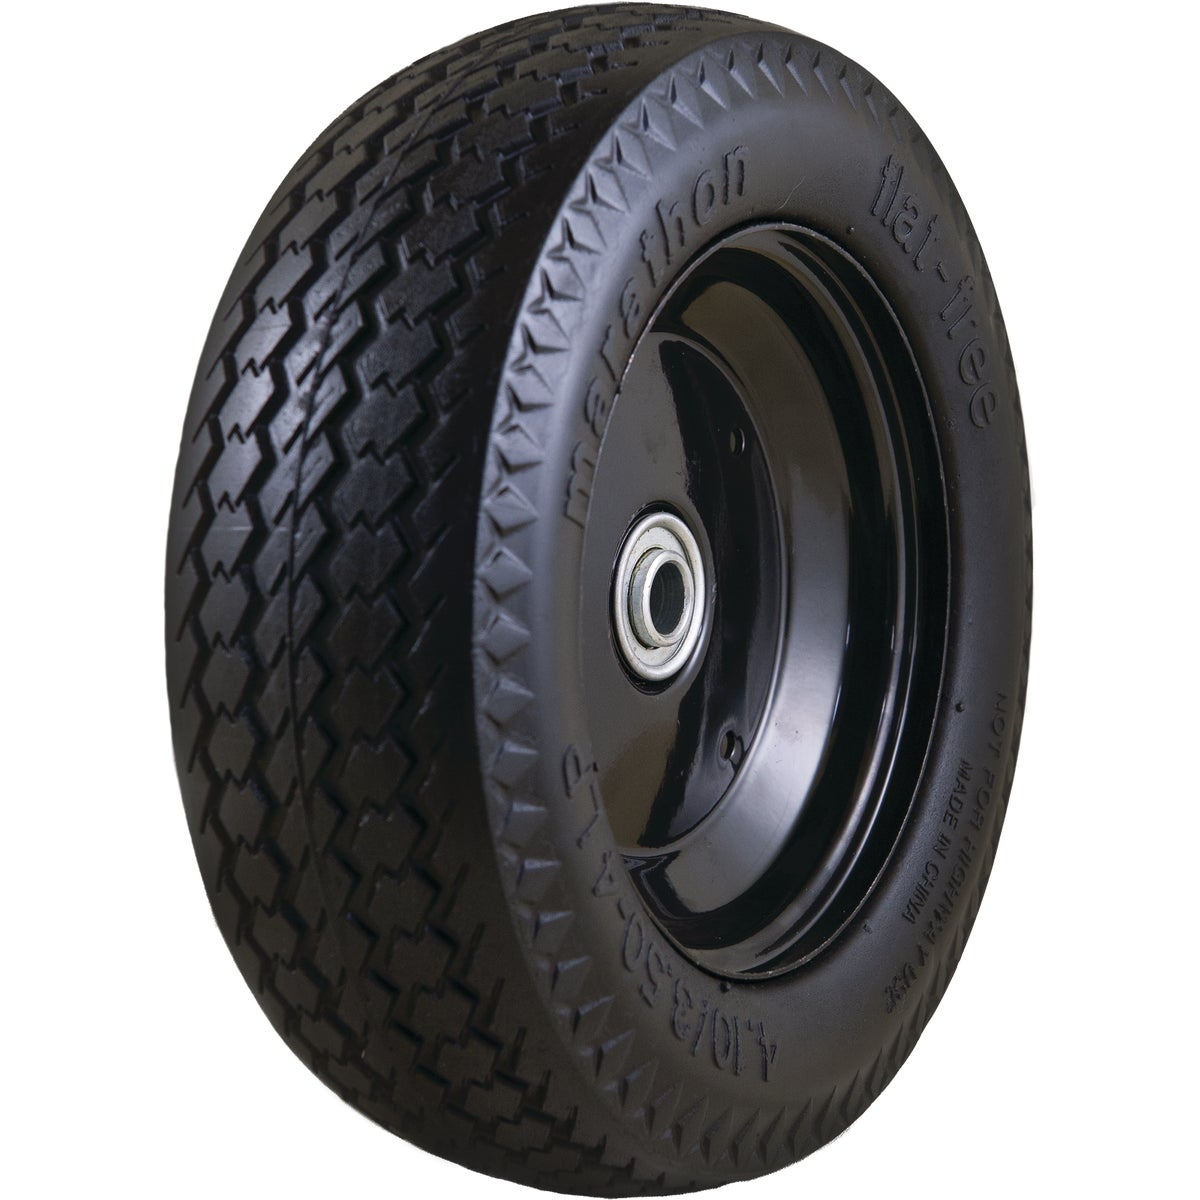 UNIV FF HAND TRUCK TIRE - 00210 by Marathon Industries